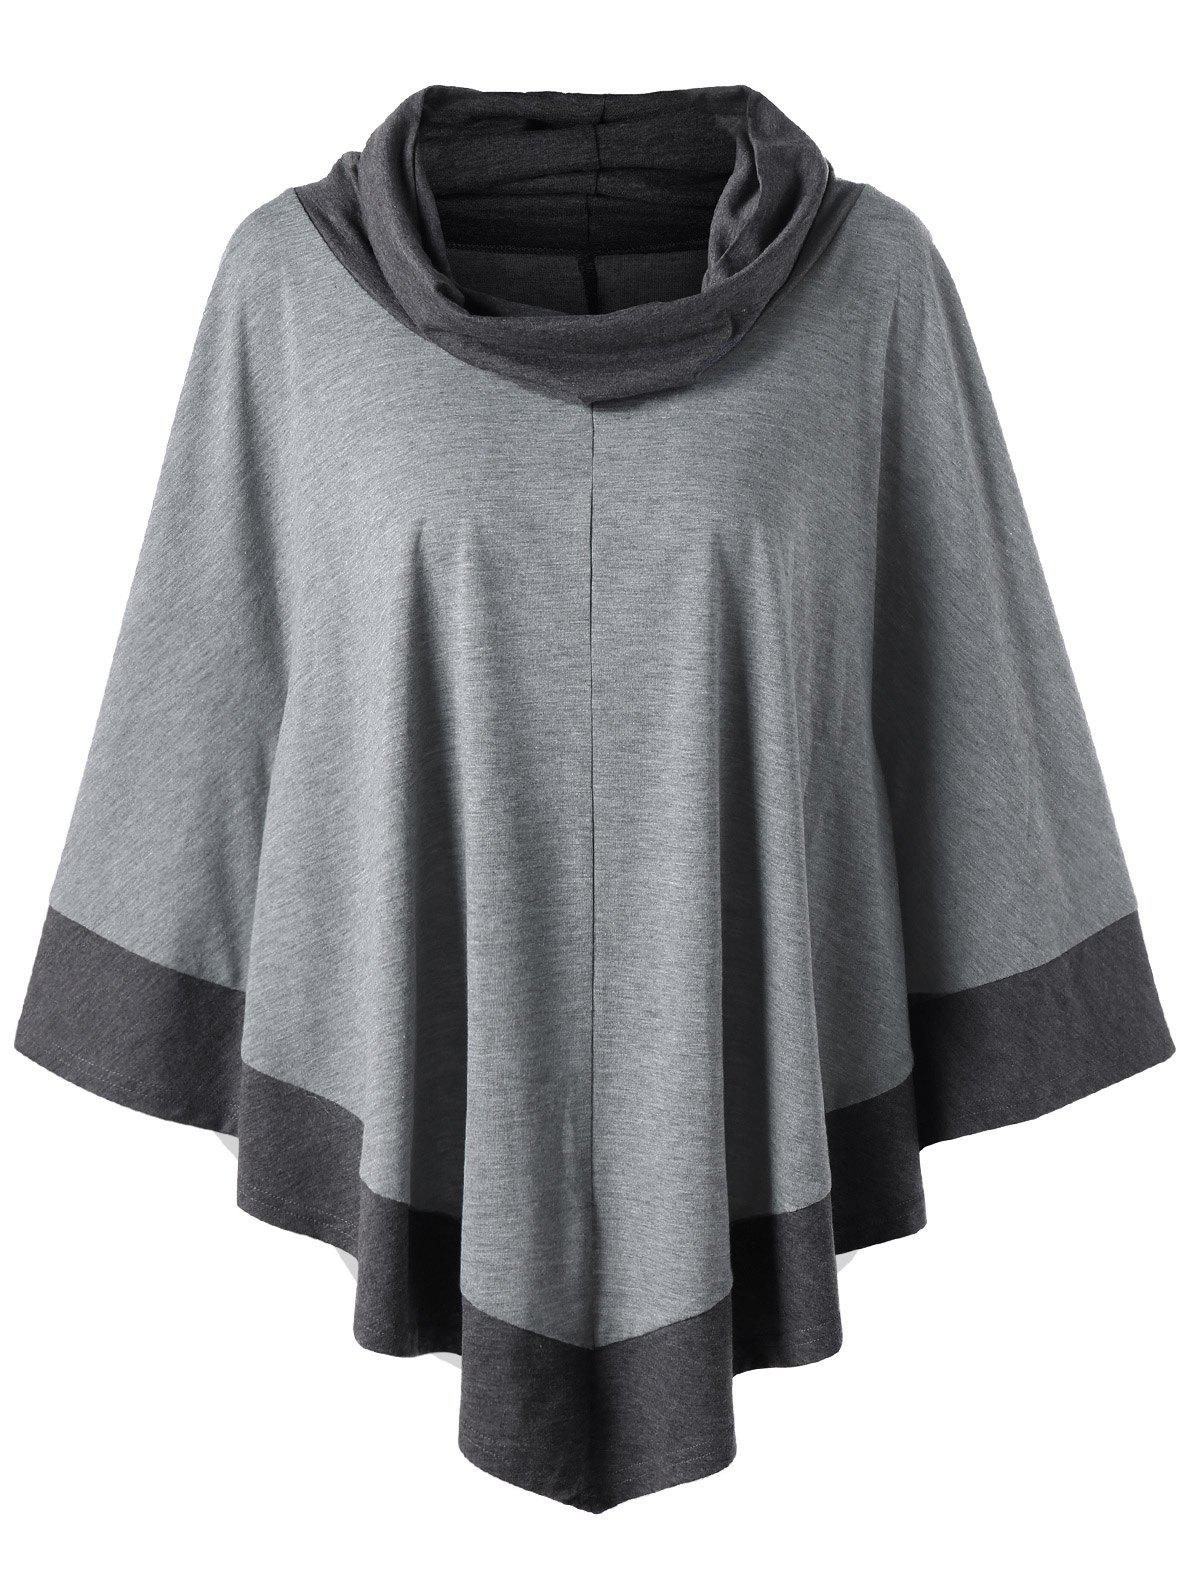 Plus Size Cowl Neck Longline Poncho TopWOMEN<br><br>Size: XL; Color: SMOKY GRAY; Material: Polyester,Spandex; Shirt Length: Long; Sleeve Length: Full; Collar: Cowl Neck; Style: Casual; Season: Fall,Spring; Pattern Type: Solid; Weight: 0.4000kg; Package Contents: 1 x Top;